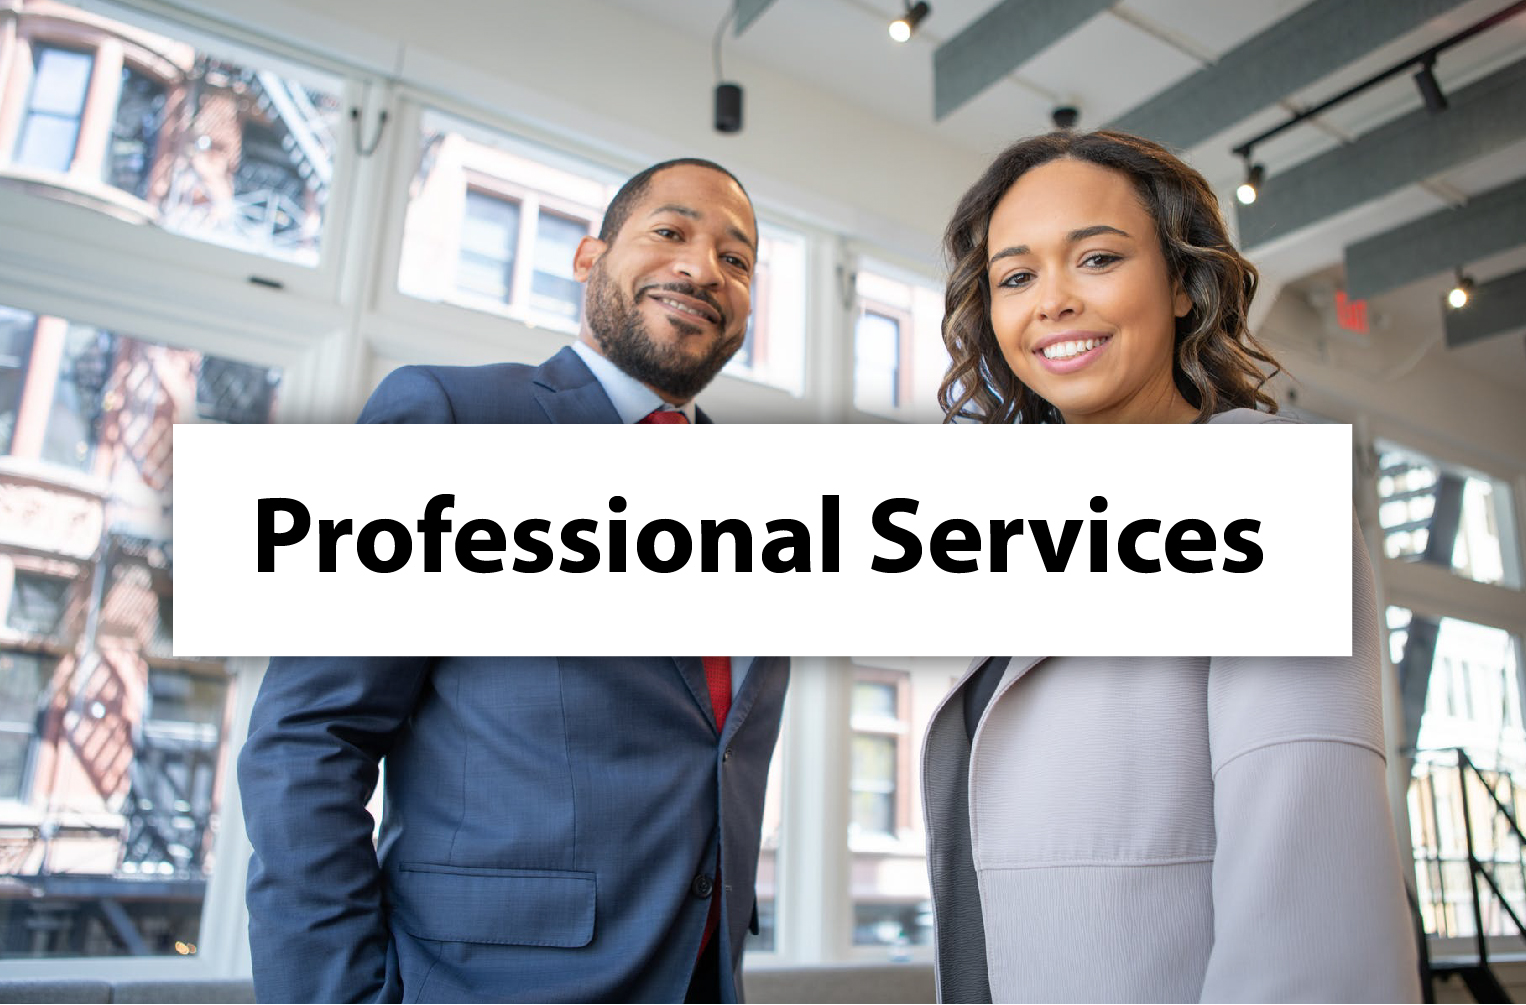 Professional Services1 02